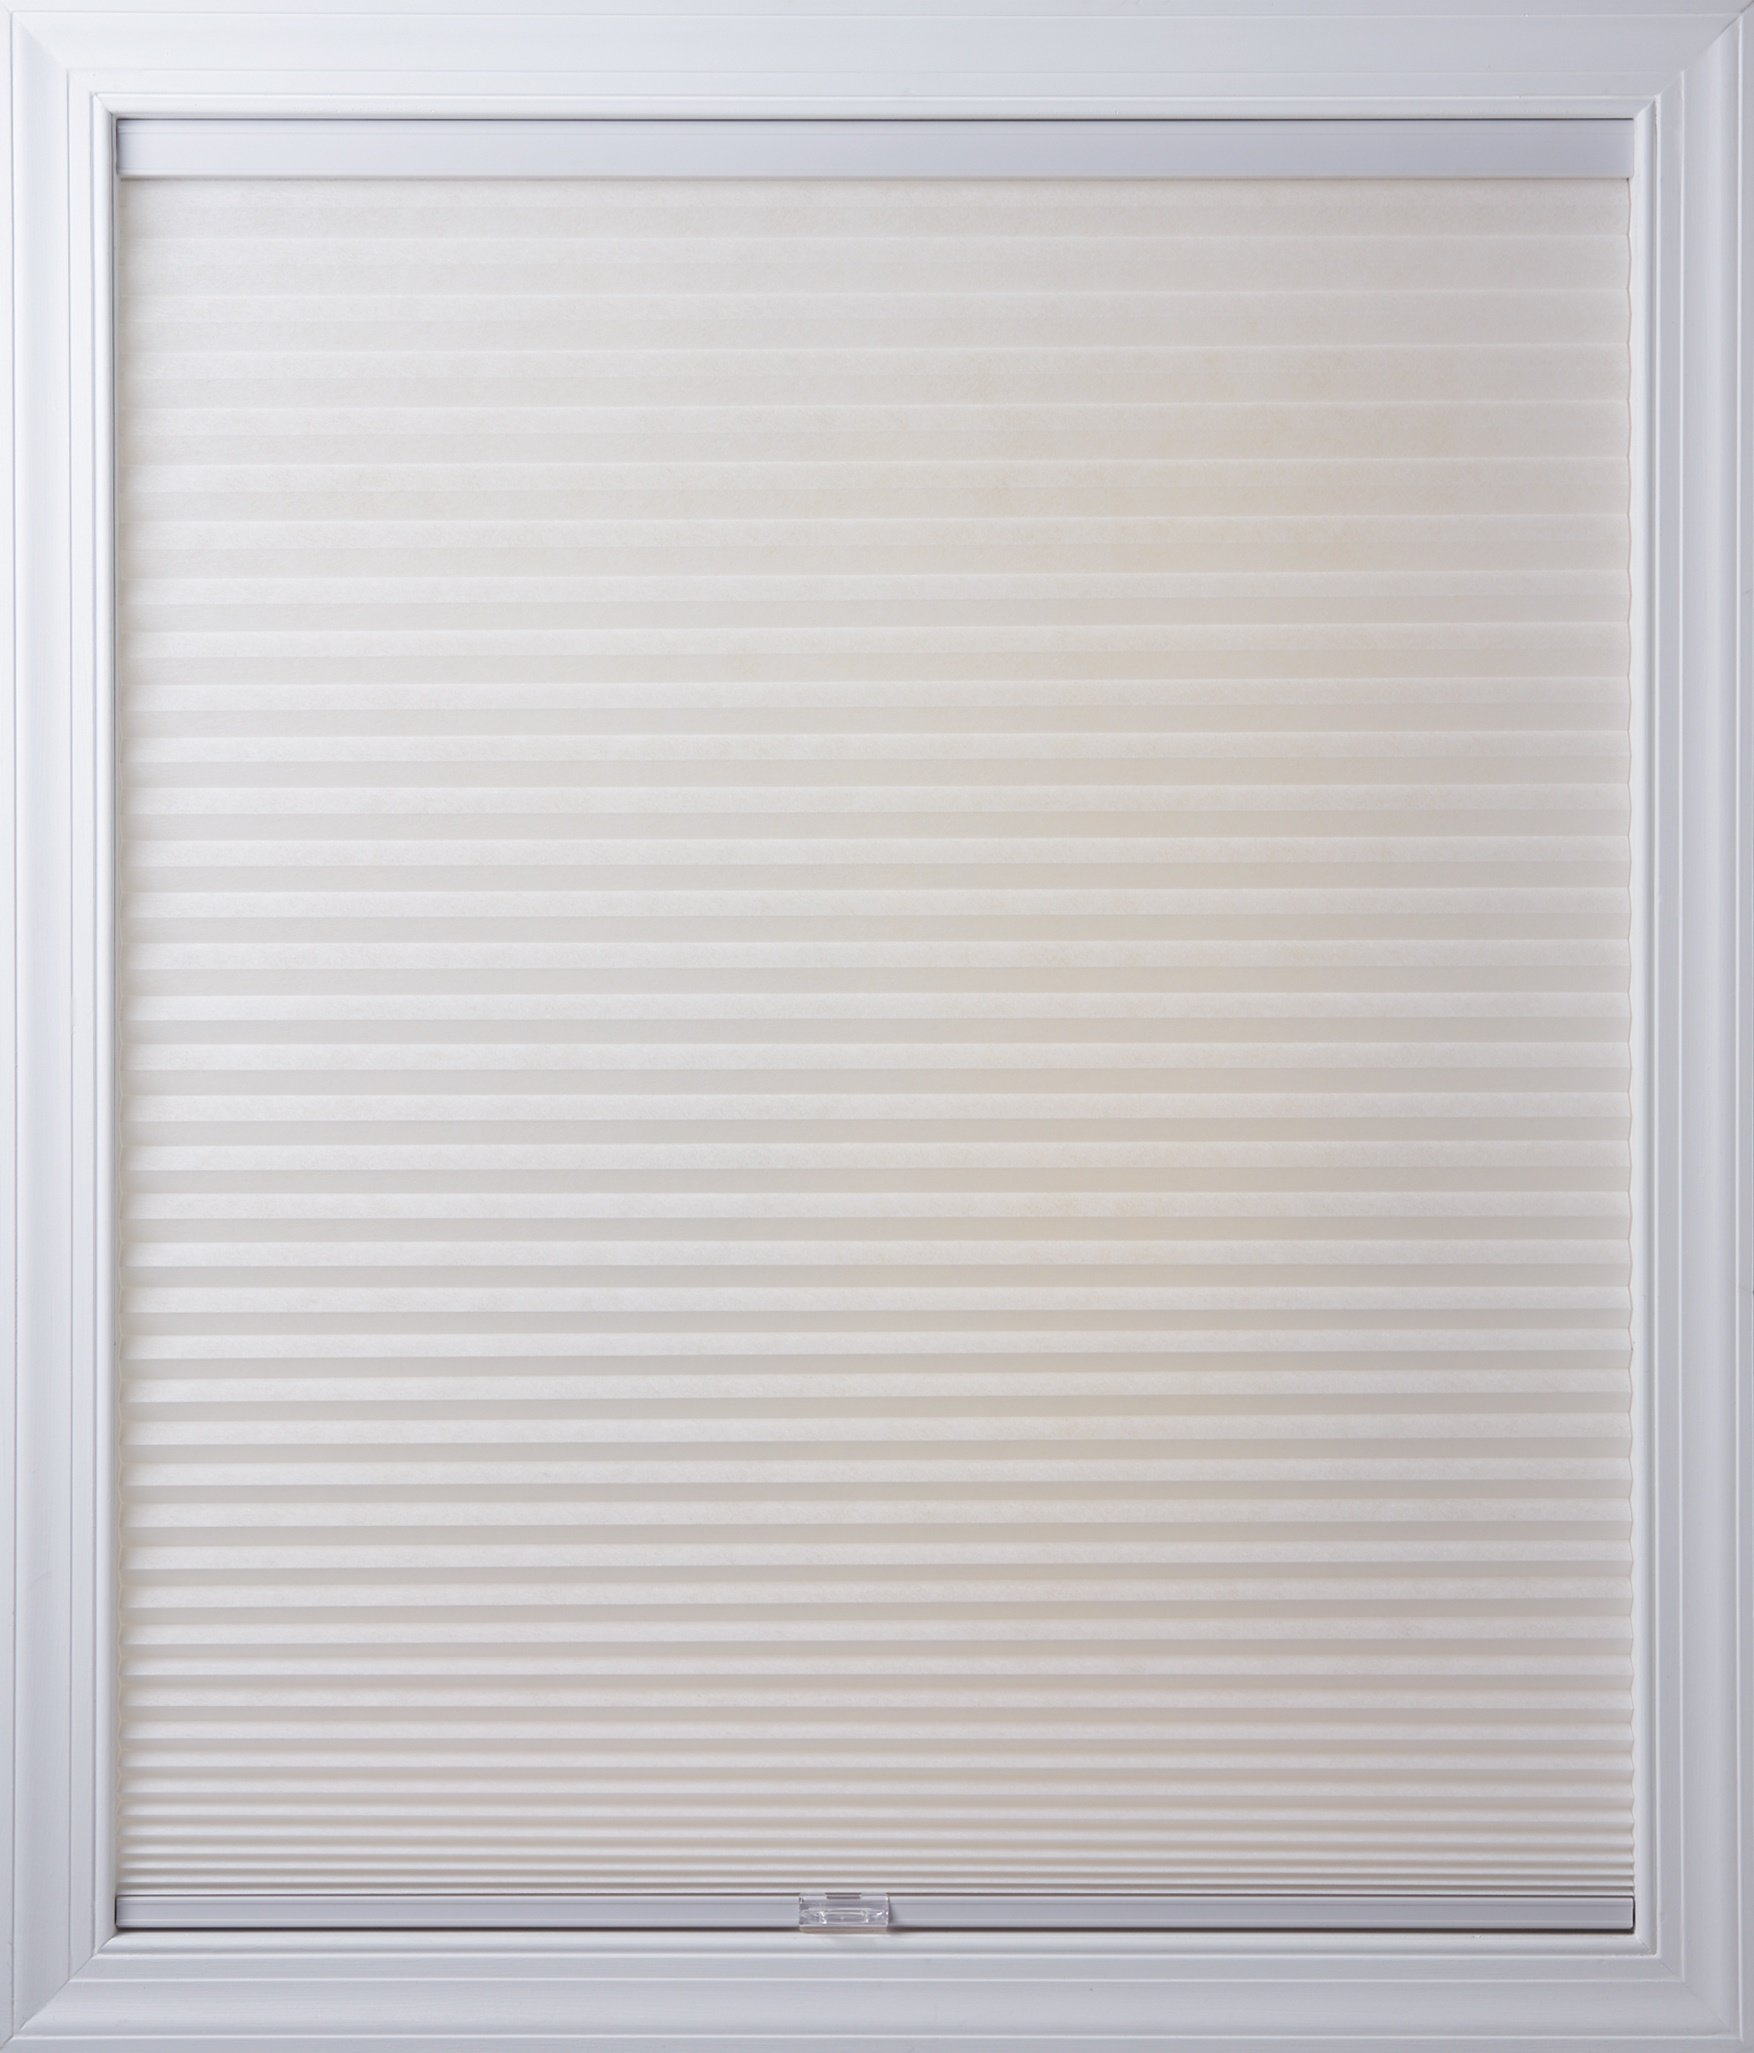 New Age Blinds Light Filtering Inside Frame Mount Cordless Cellular Shade 21-1/4 x 72-Inch Cotton by New Age Blinds